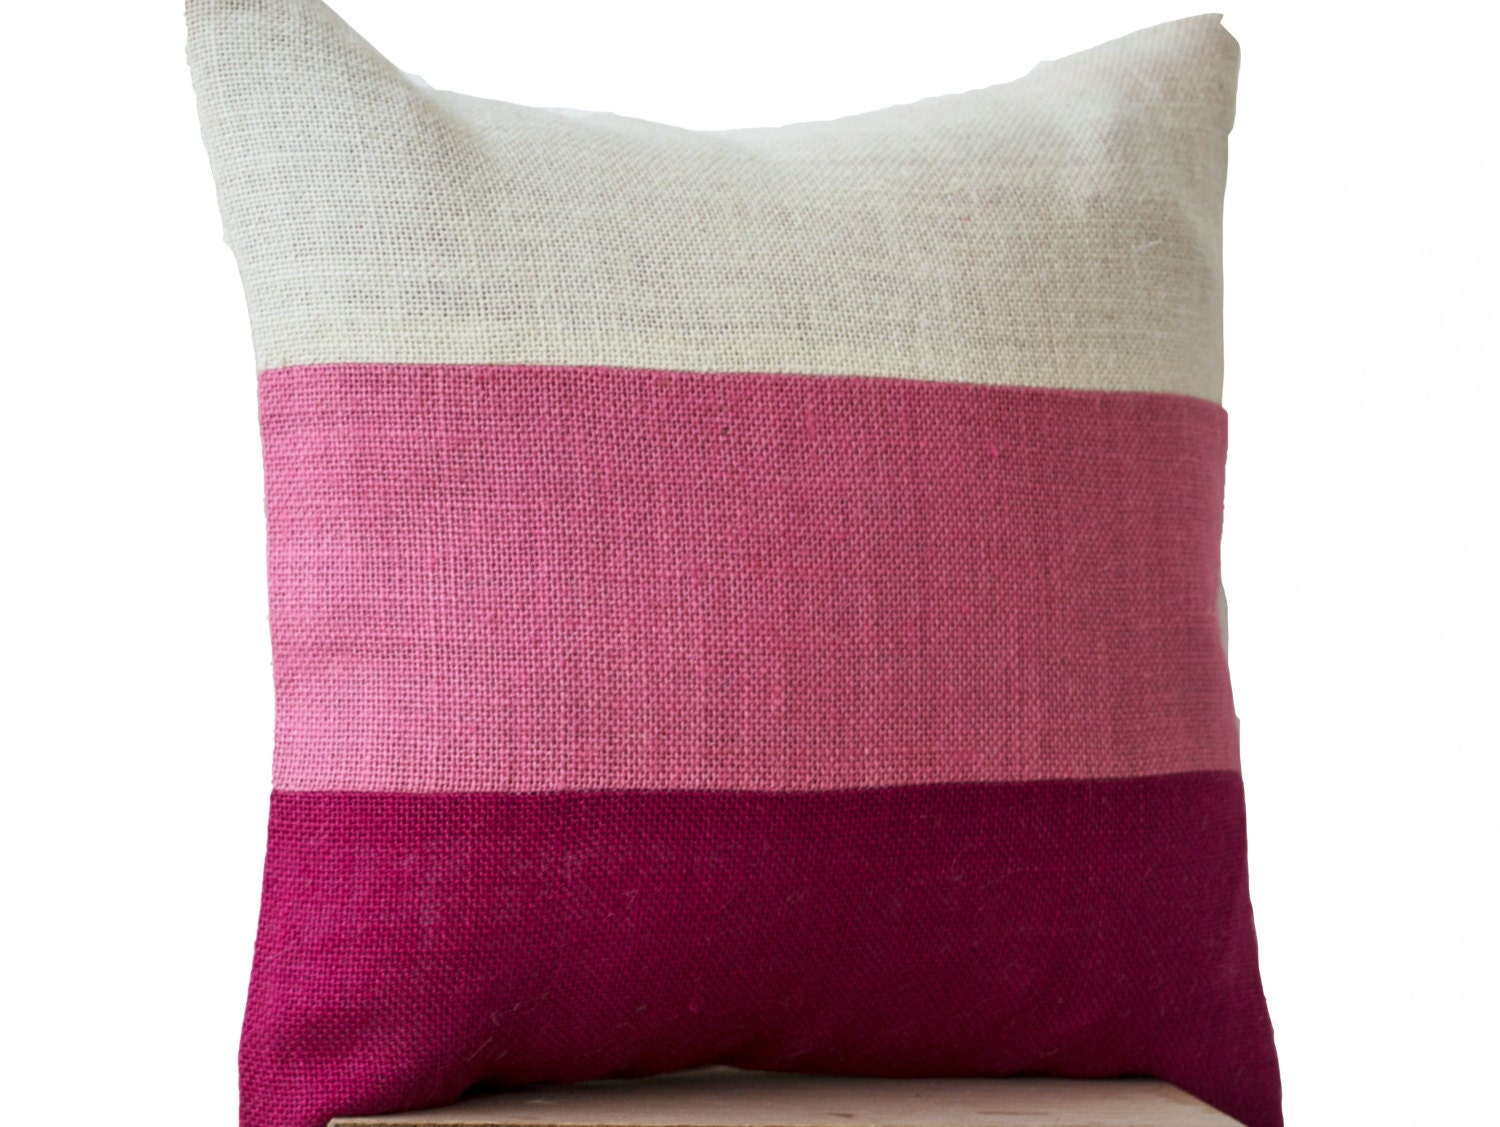 Burlap Throw Pillows Etsy : Chic Pink Burlap Pillow Throw Pillows color block by AmoreBeaute